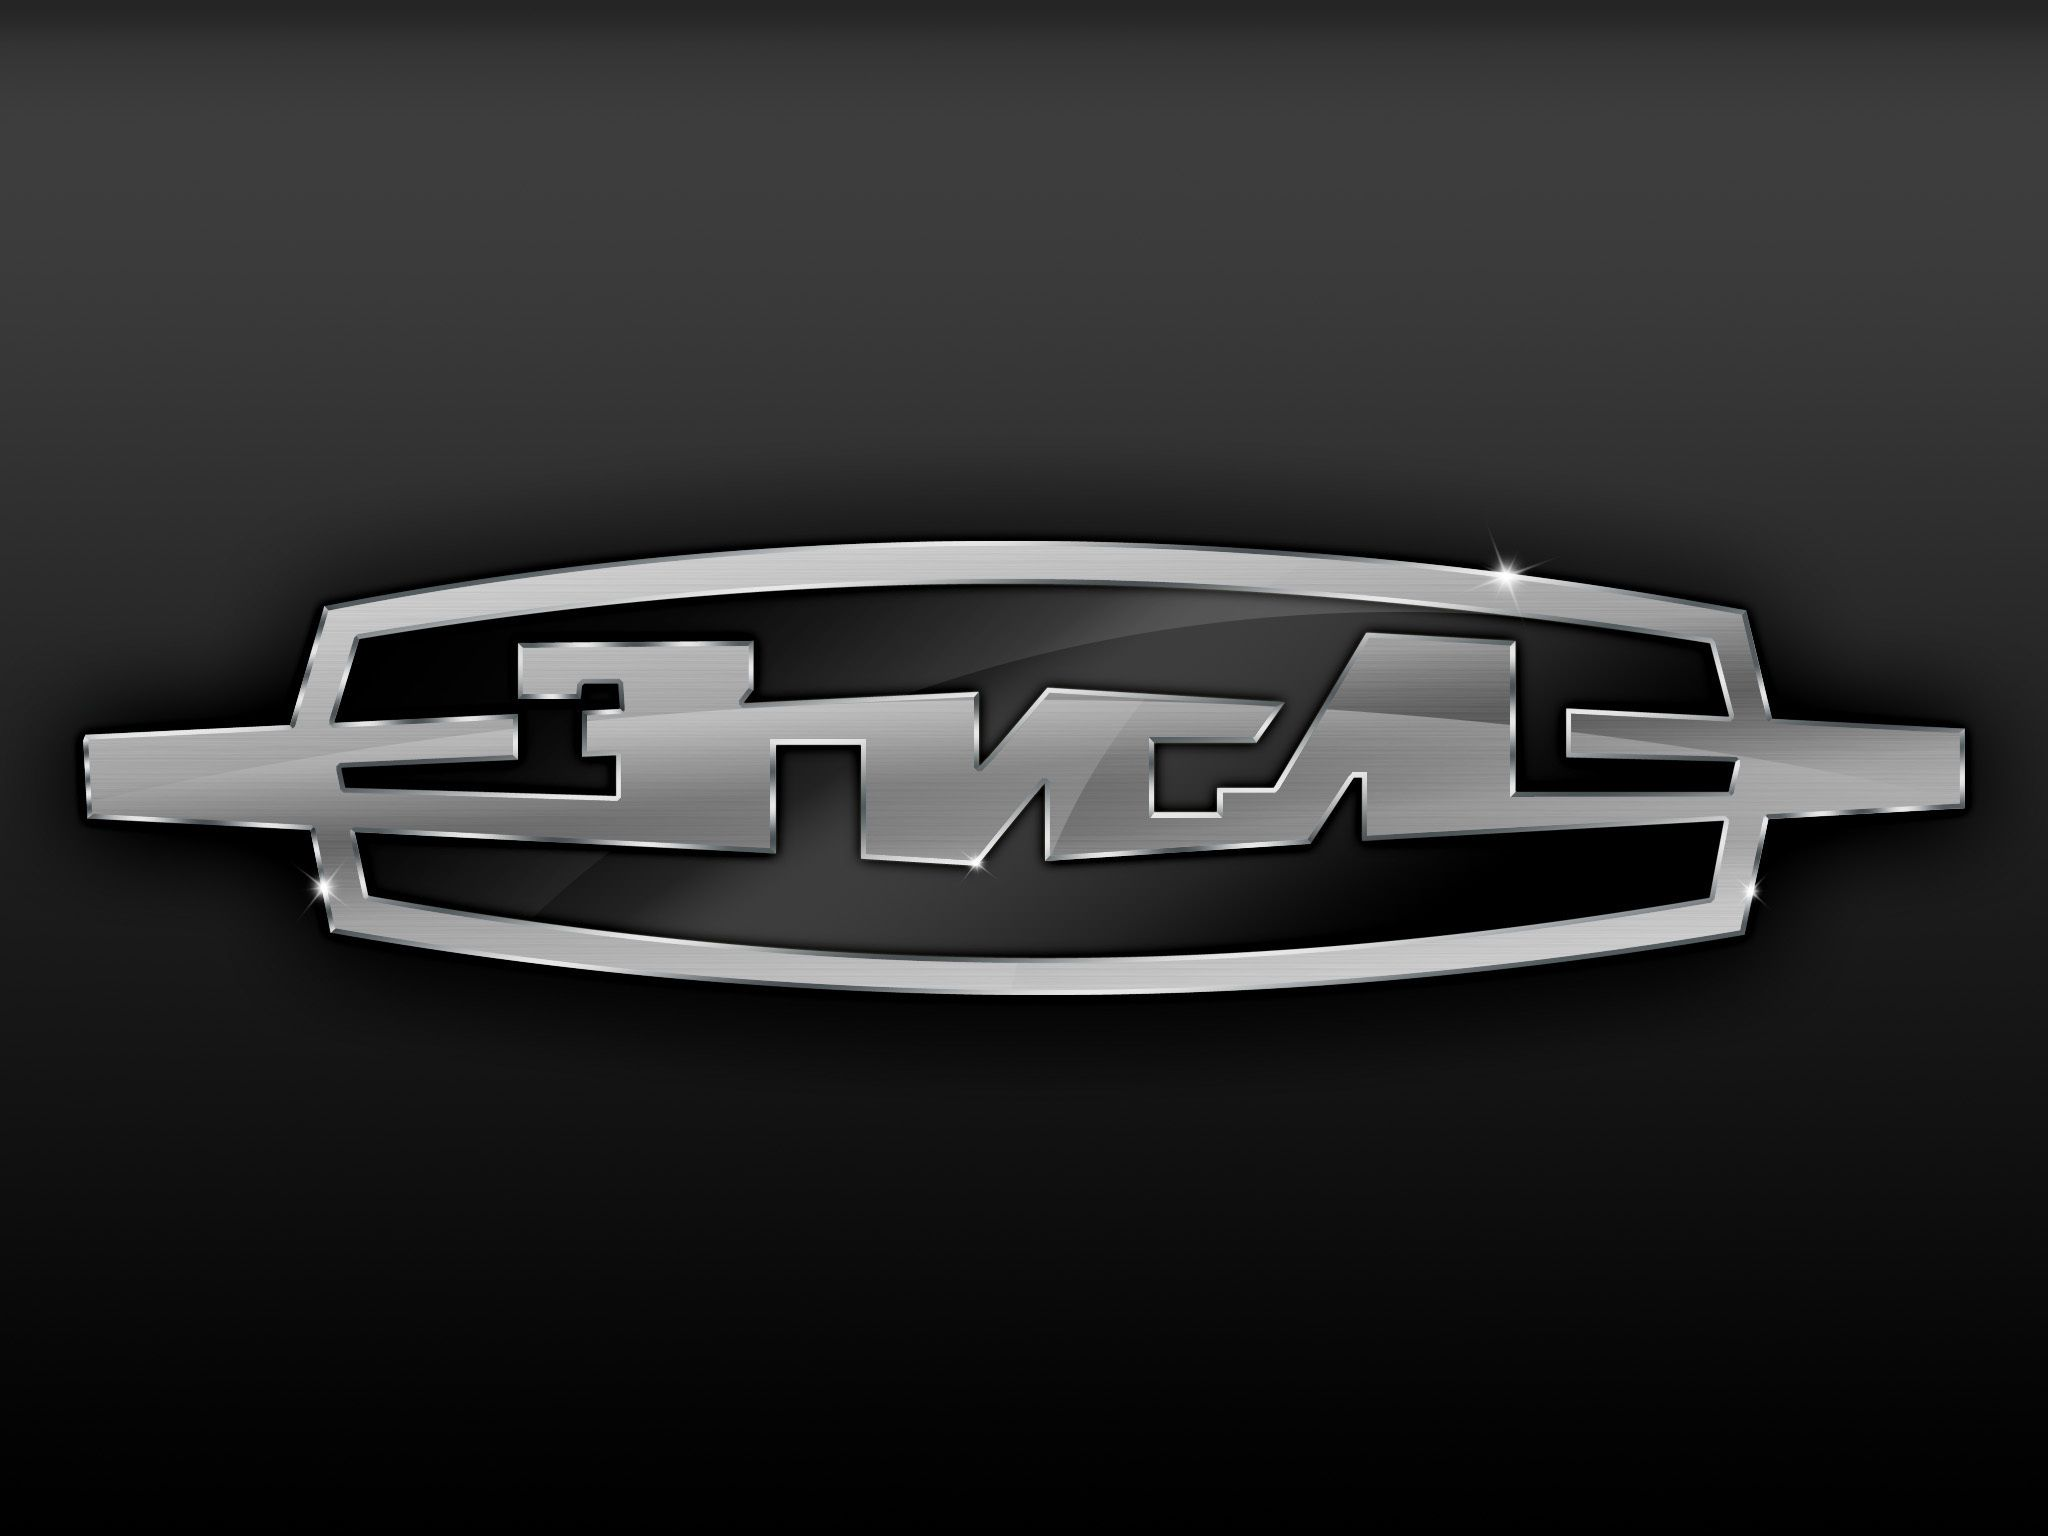 ZIL Logo 3D Wallpaper